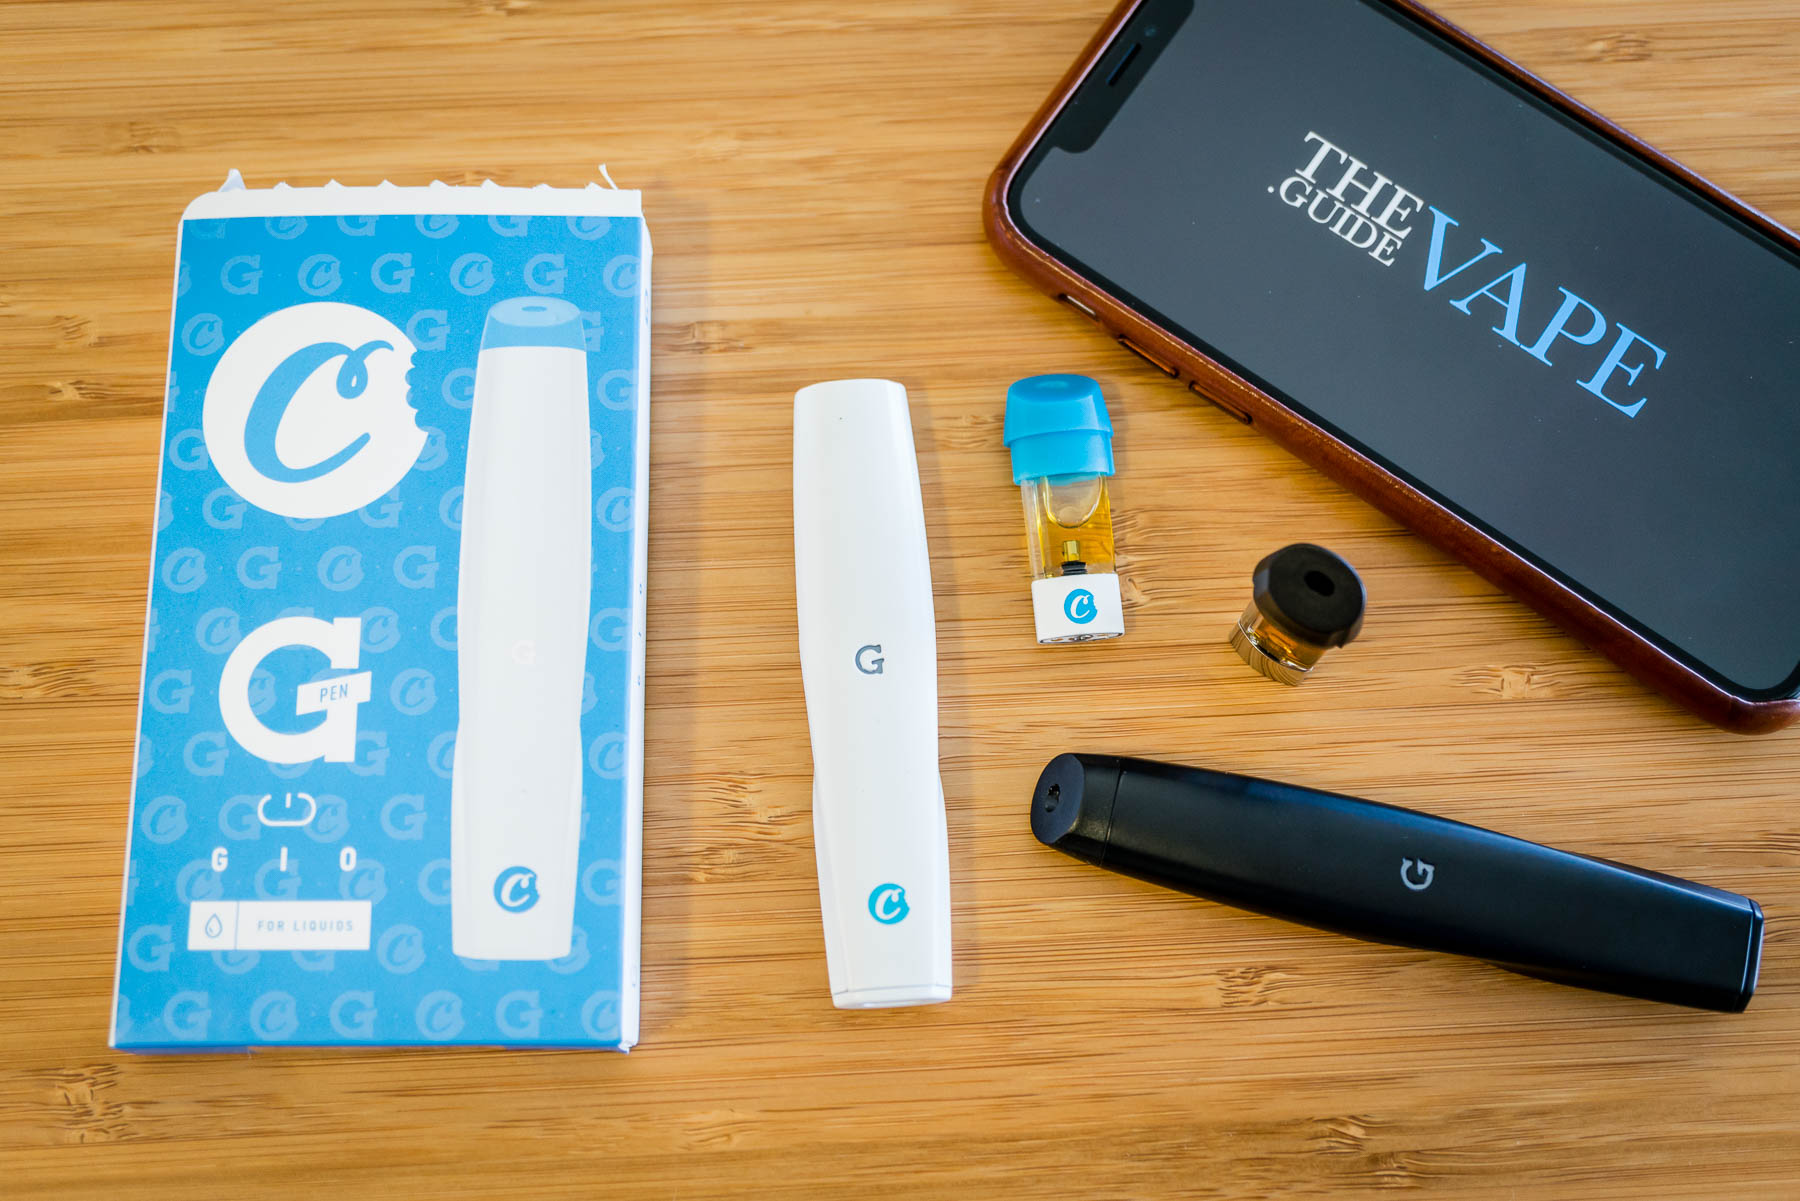 G Pen Gio Cookies special edition